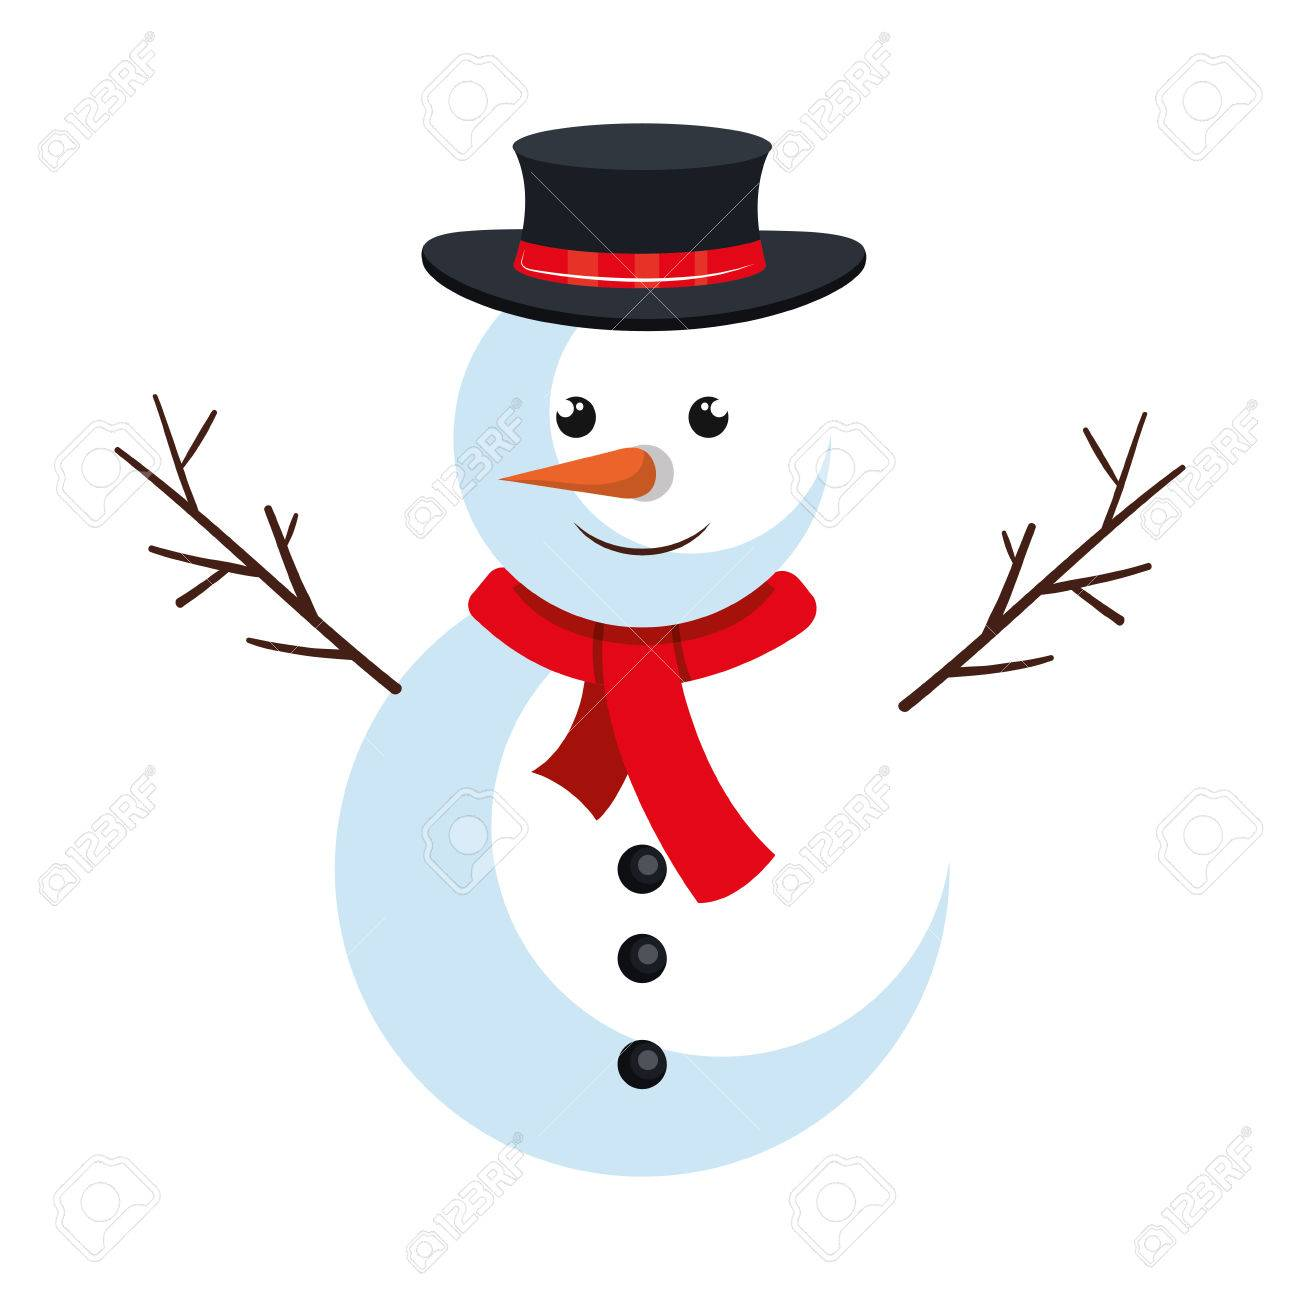 snowman cartoon with red scarf and black hat christmas symbol rh 123rf com vector snow mountains vector snow cone